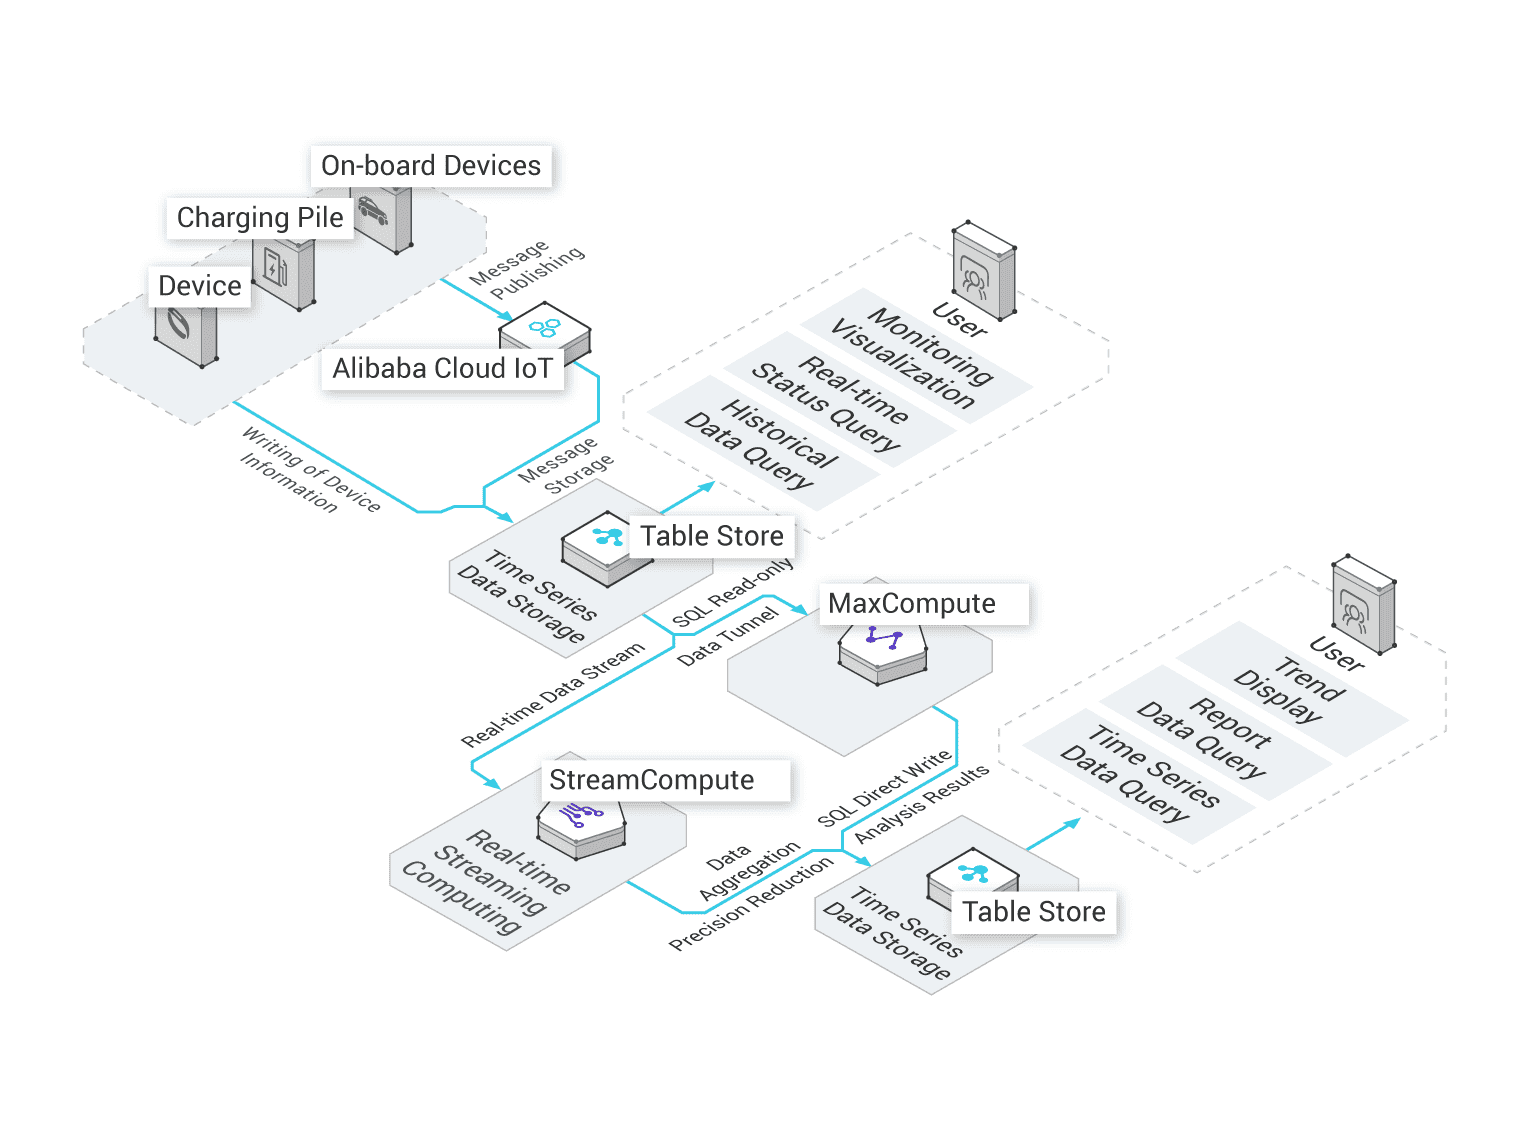 Table Store: Fully Managed NoSQL Cloud Database Service